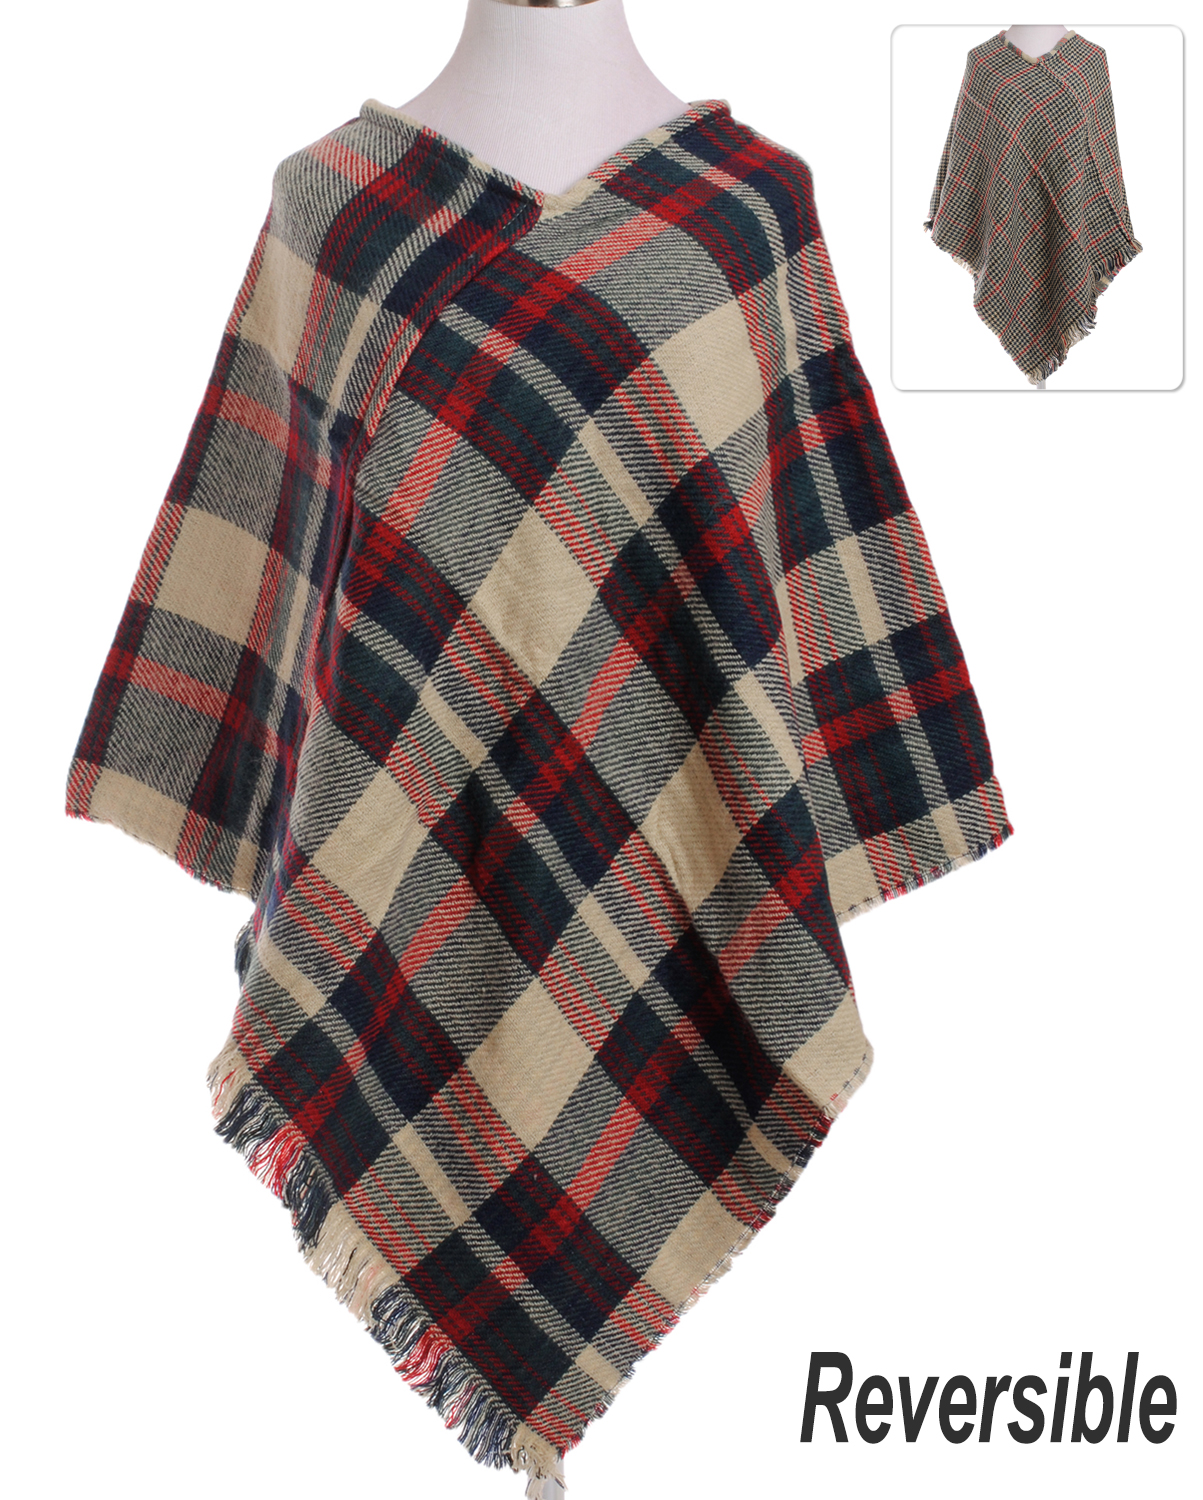 LOF171(IV)-wholesale-poncho-plaid-checkered-houndstooth-reversible-knitted-fringe-tassel-one-size-acrylic(0).jpg